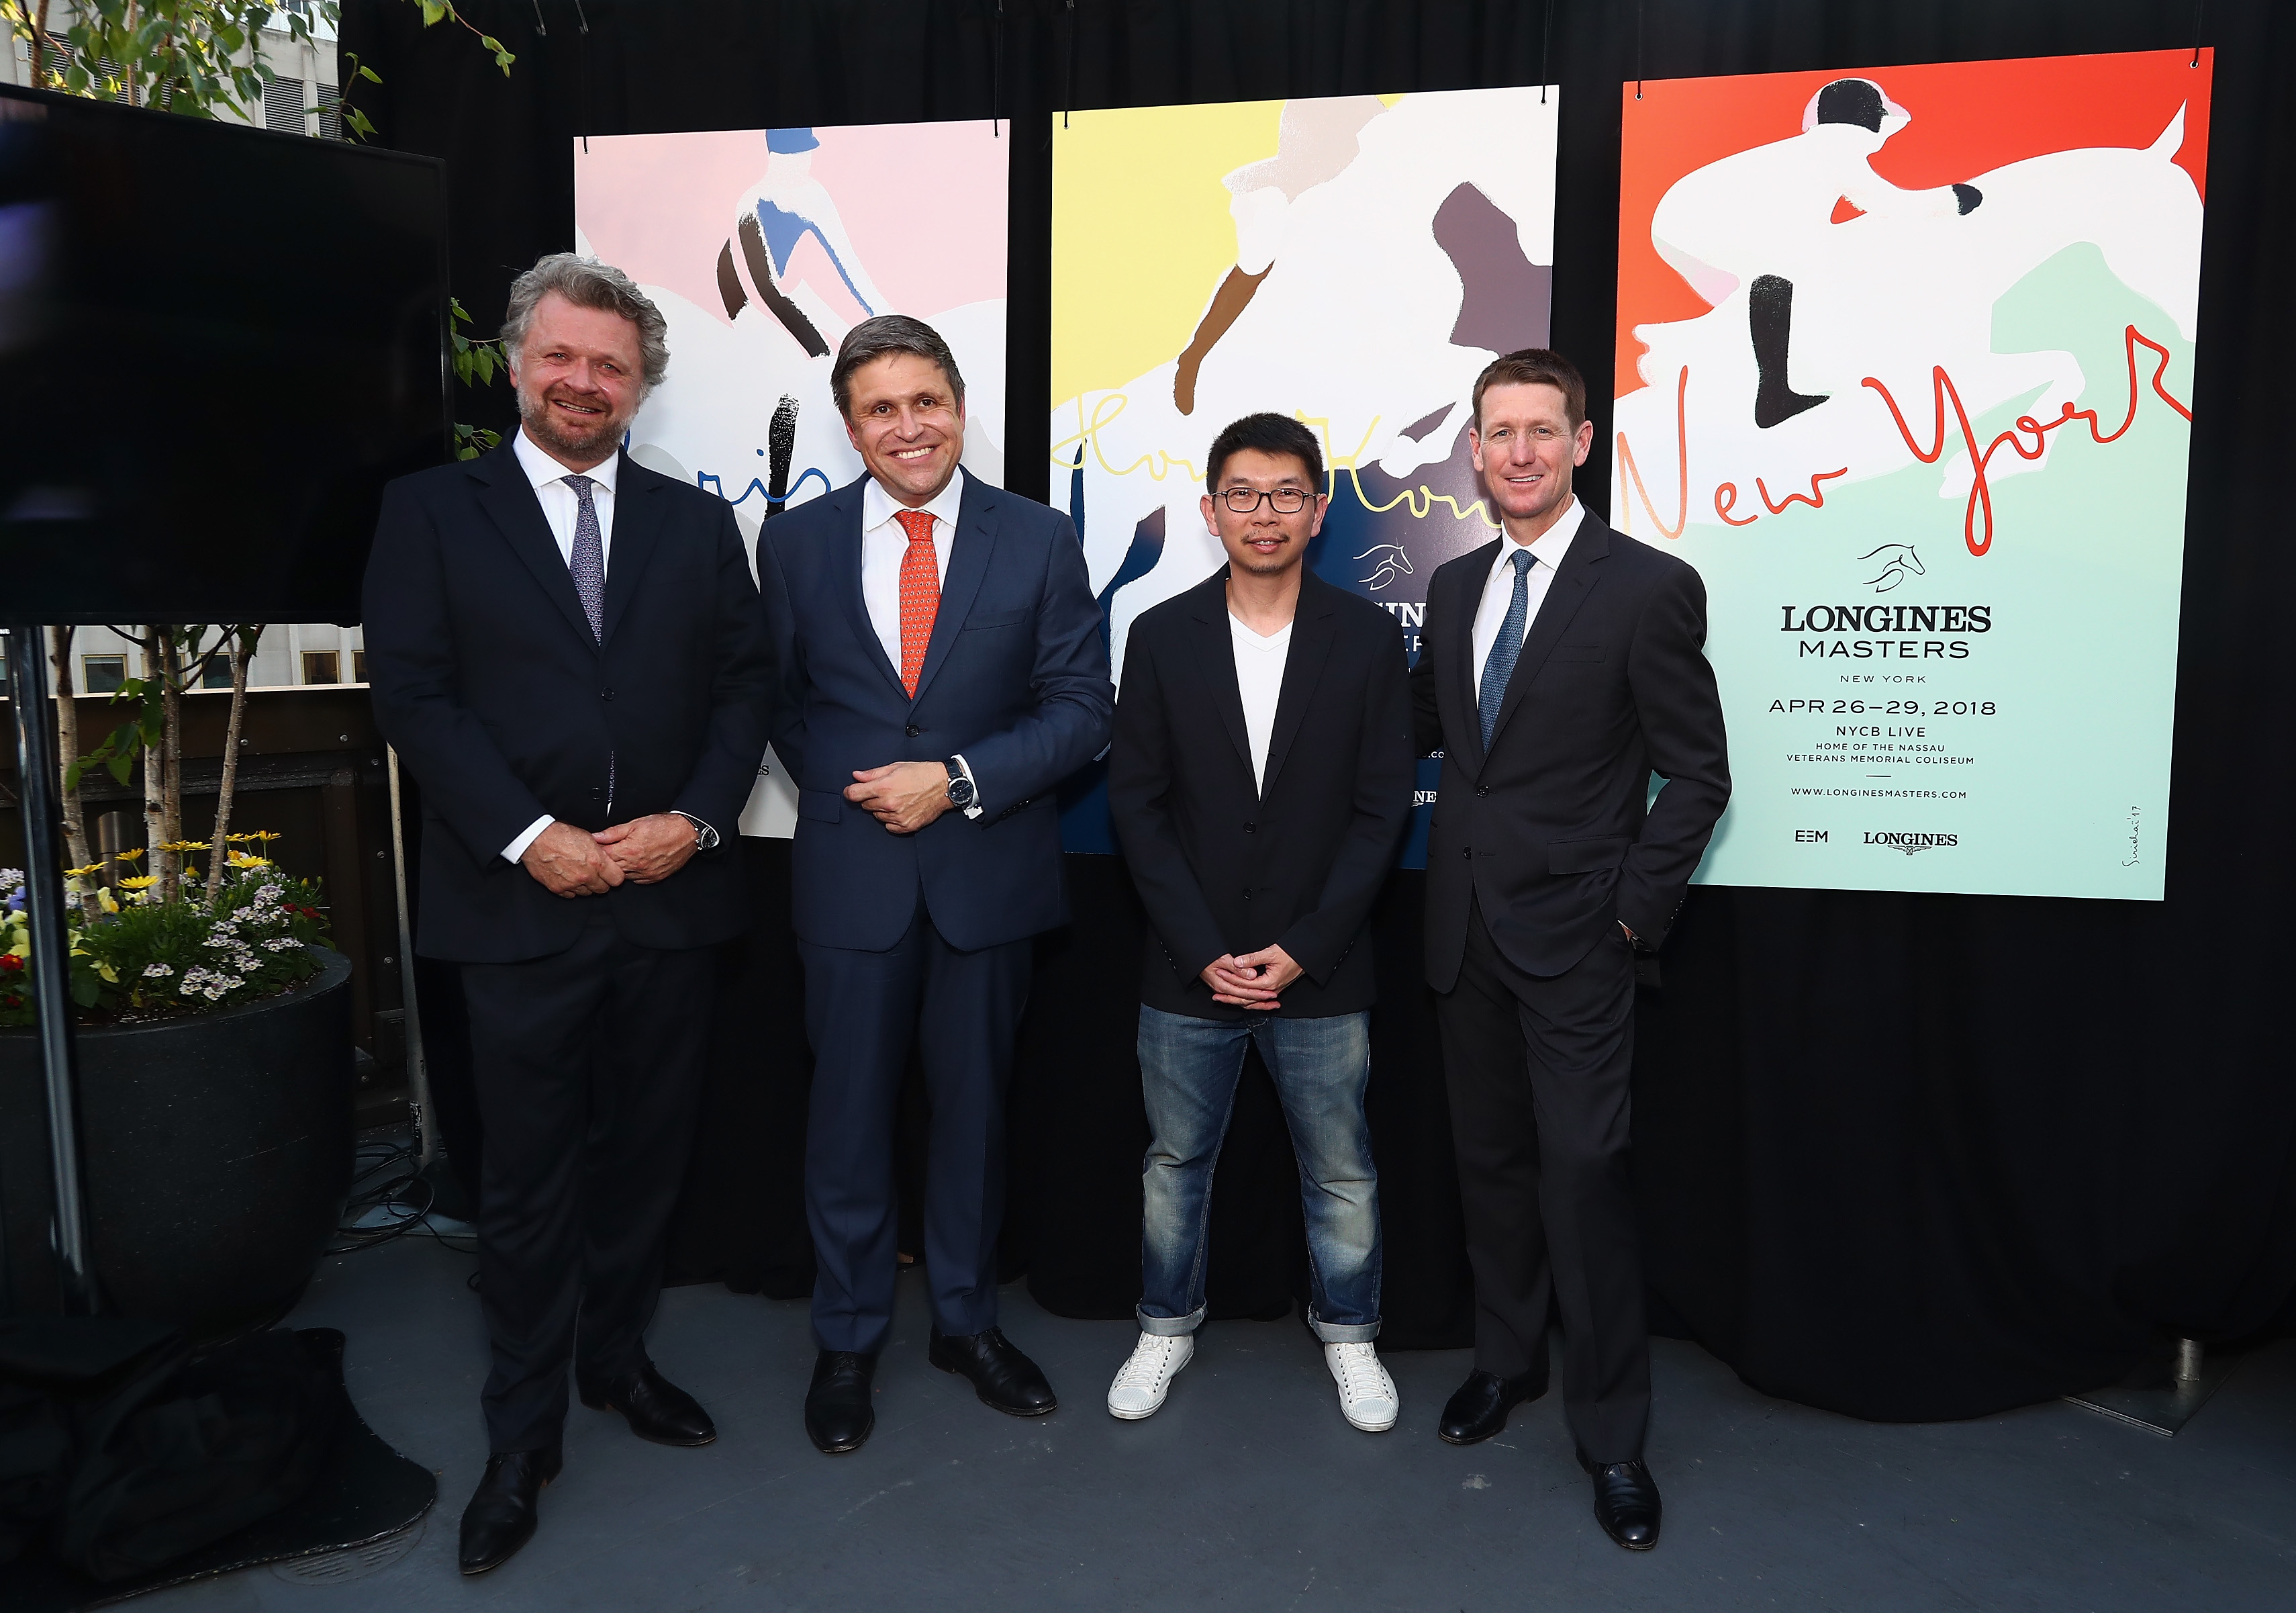 NEW YORK, NY - MAY 17: (L-R) Christophe Ameeuw, Founder and CEO of EEM, Juan-Carlos Capelli, Longines Vice President and Head of International Marketing, artist Sirichai and Mclain Ward attend the Longines Masters launch party celebrating Series' epic move to New York at Salon de Ning on May 17, 2017 in New York City. (Photo by Astrid Stawiarz/Getty Images for Longines)